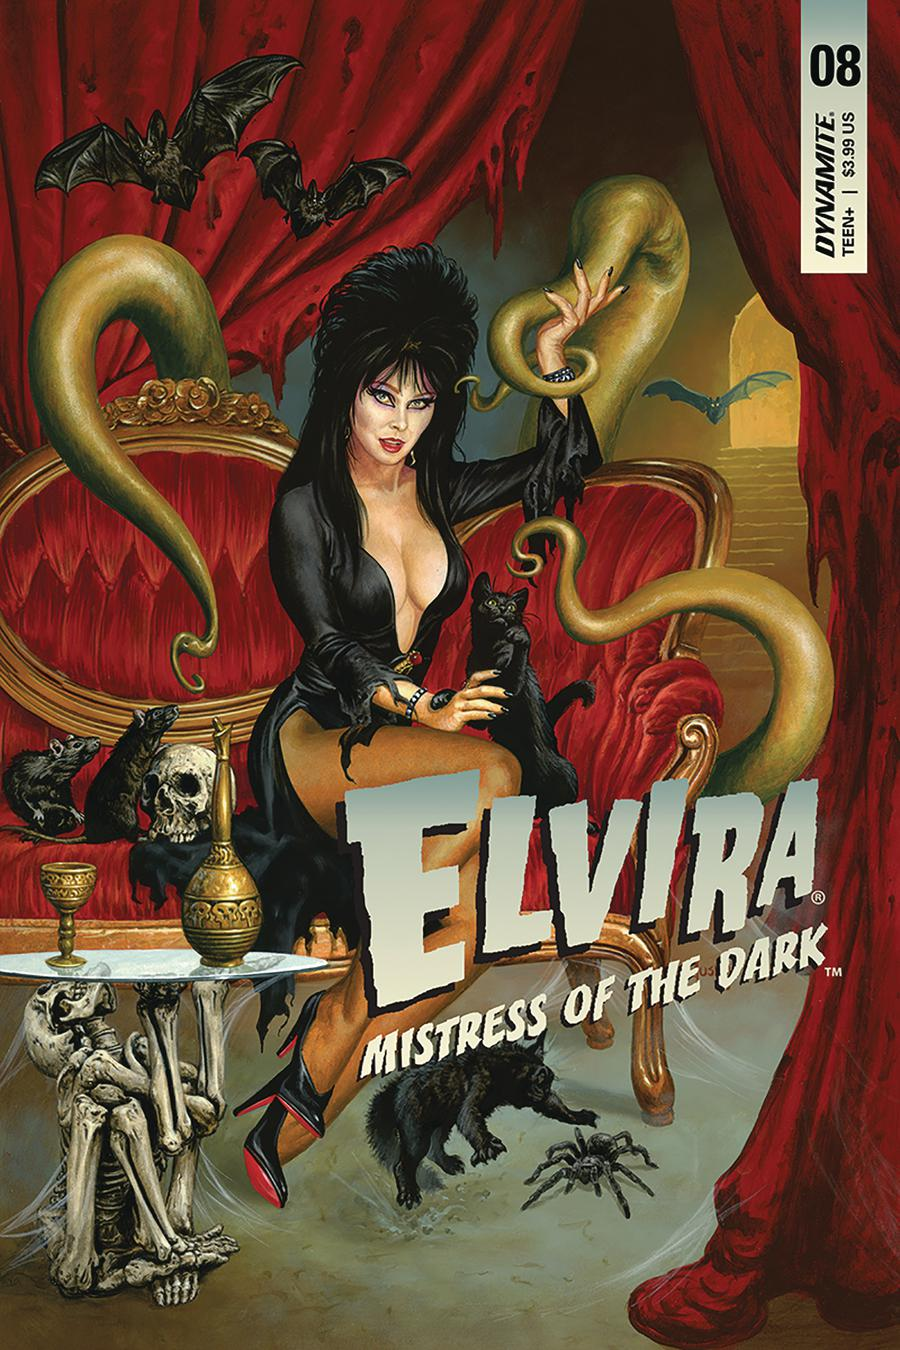 Elvira Mistress Of The Dark Vol 2 #8 Cover A Regular Joe Jusko Cover